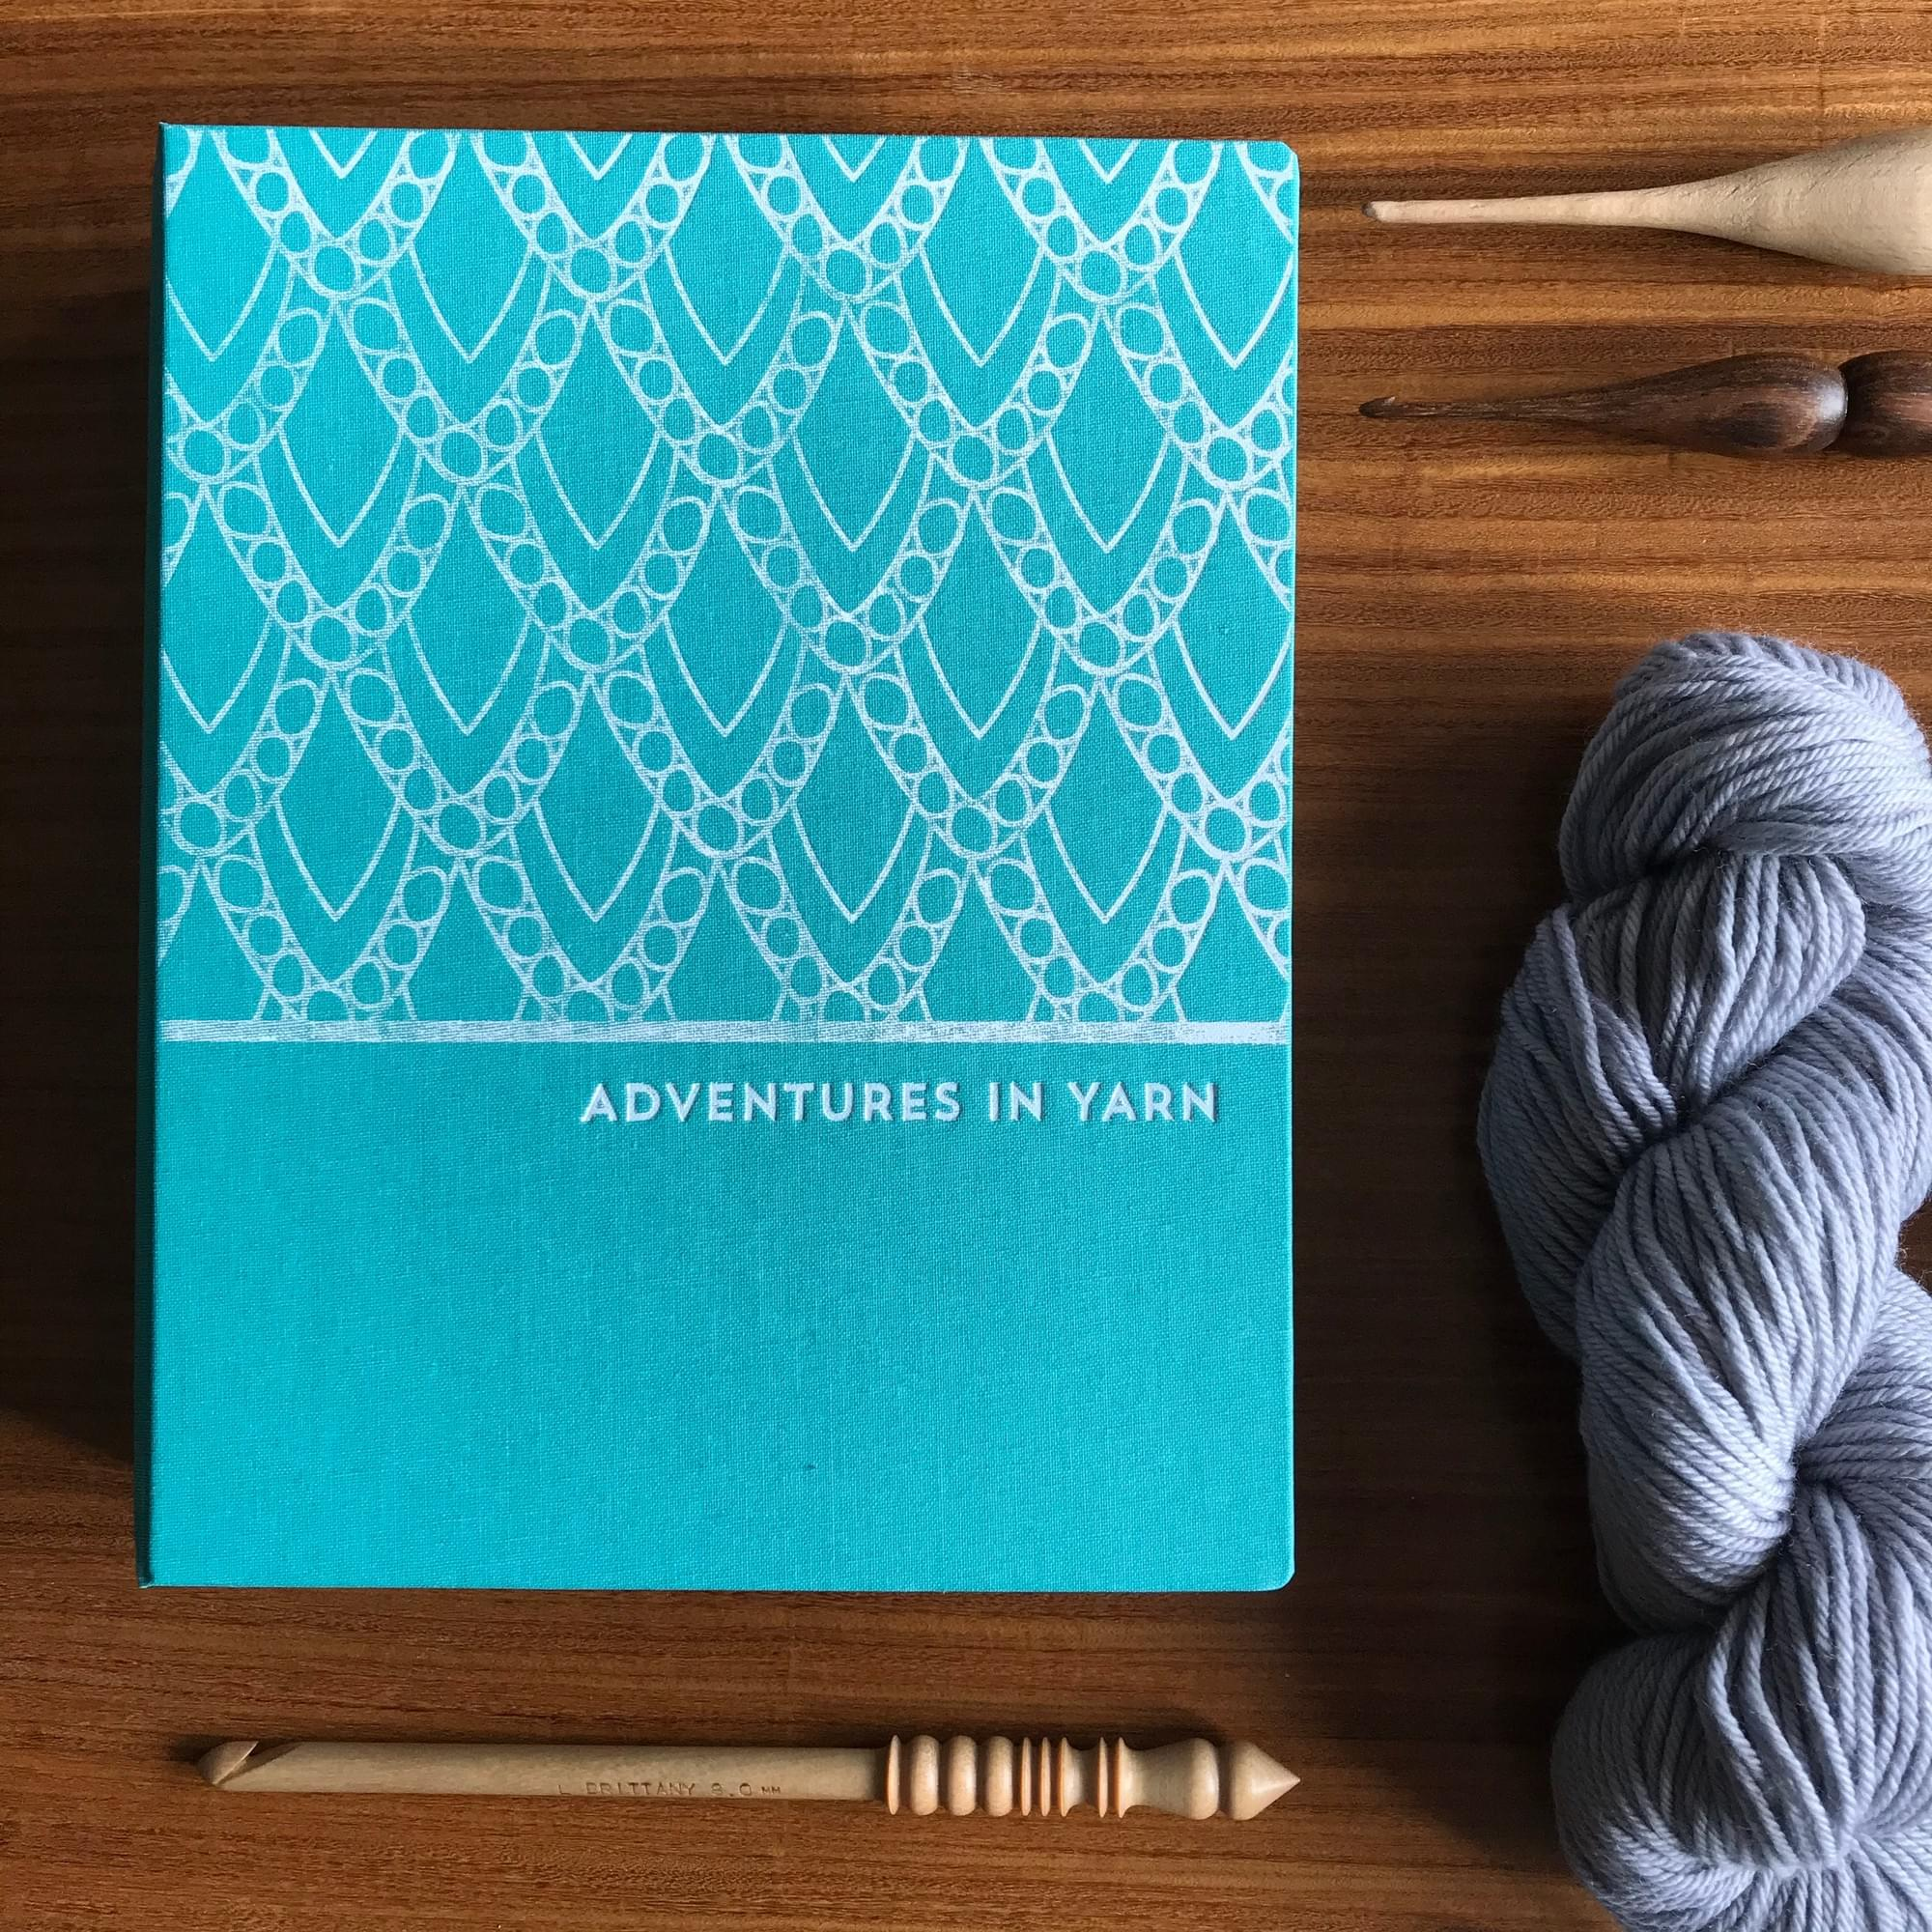 A beautiful blue cloth bound organiser with silver design lays on a table next to a skein of yarn and a crochet hook